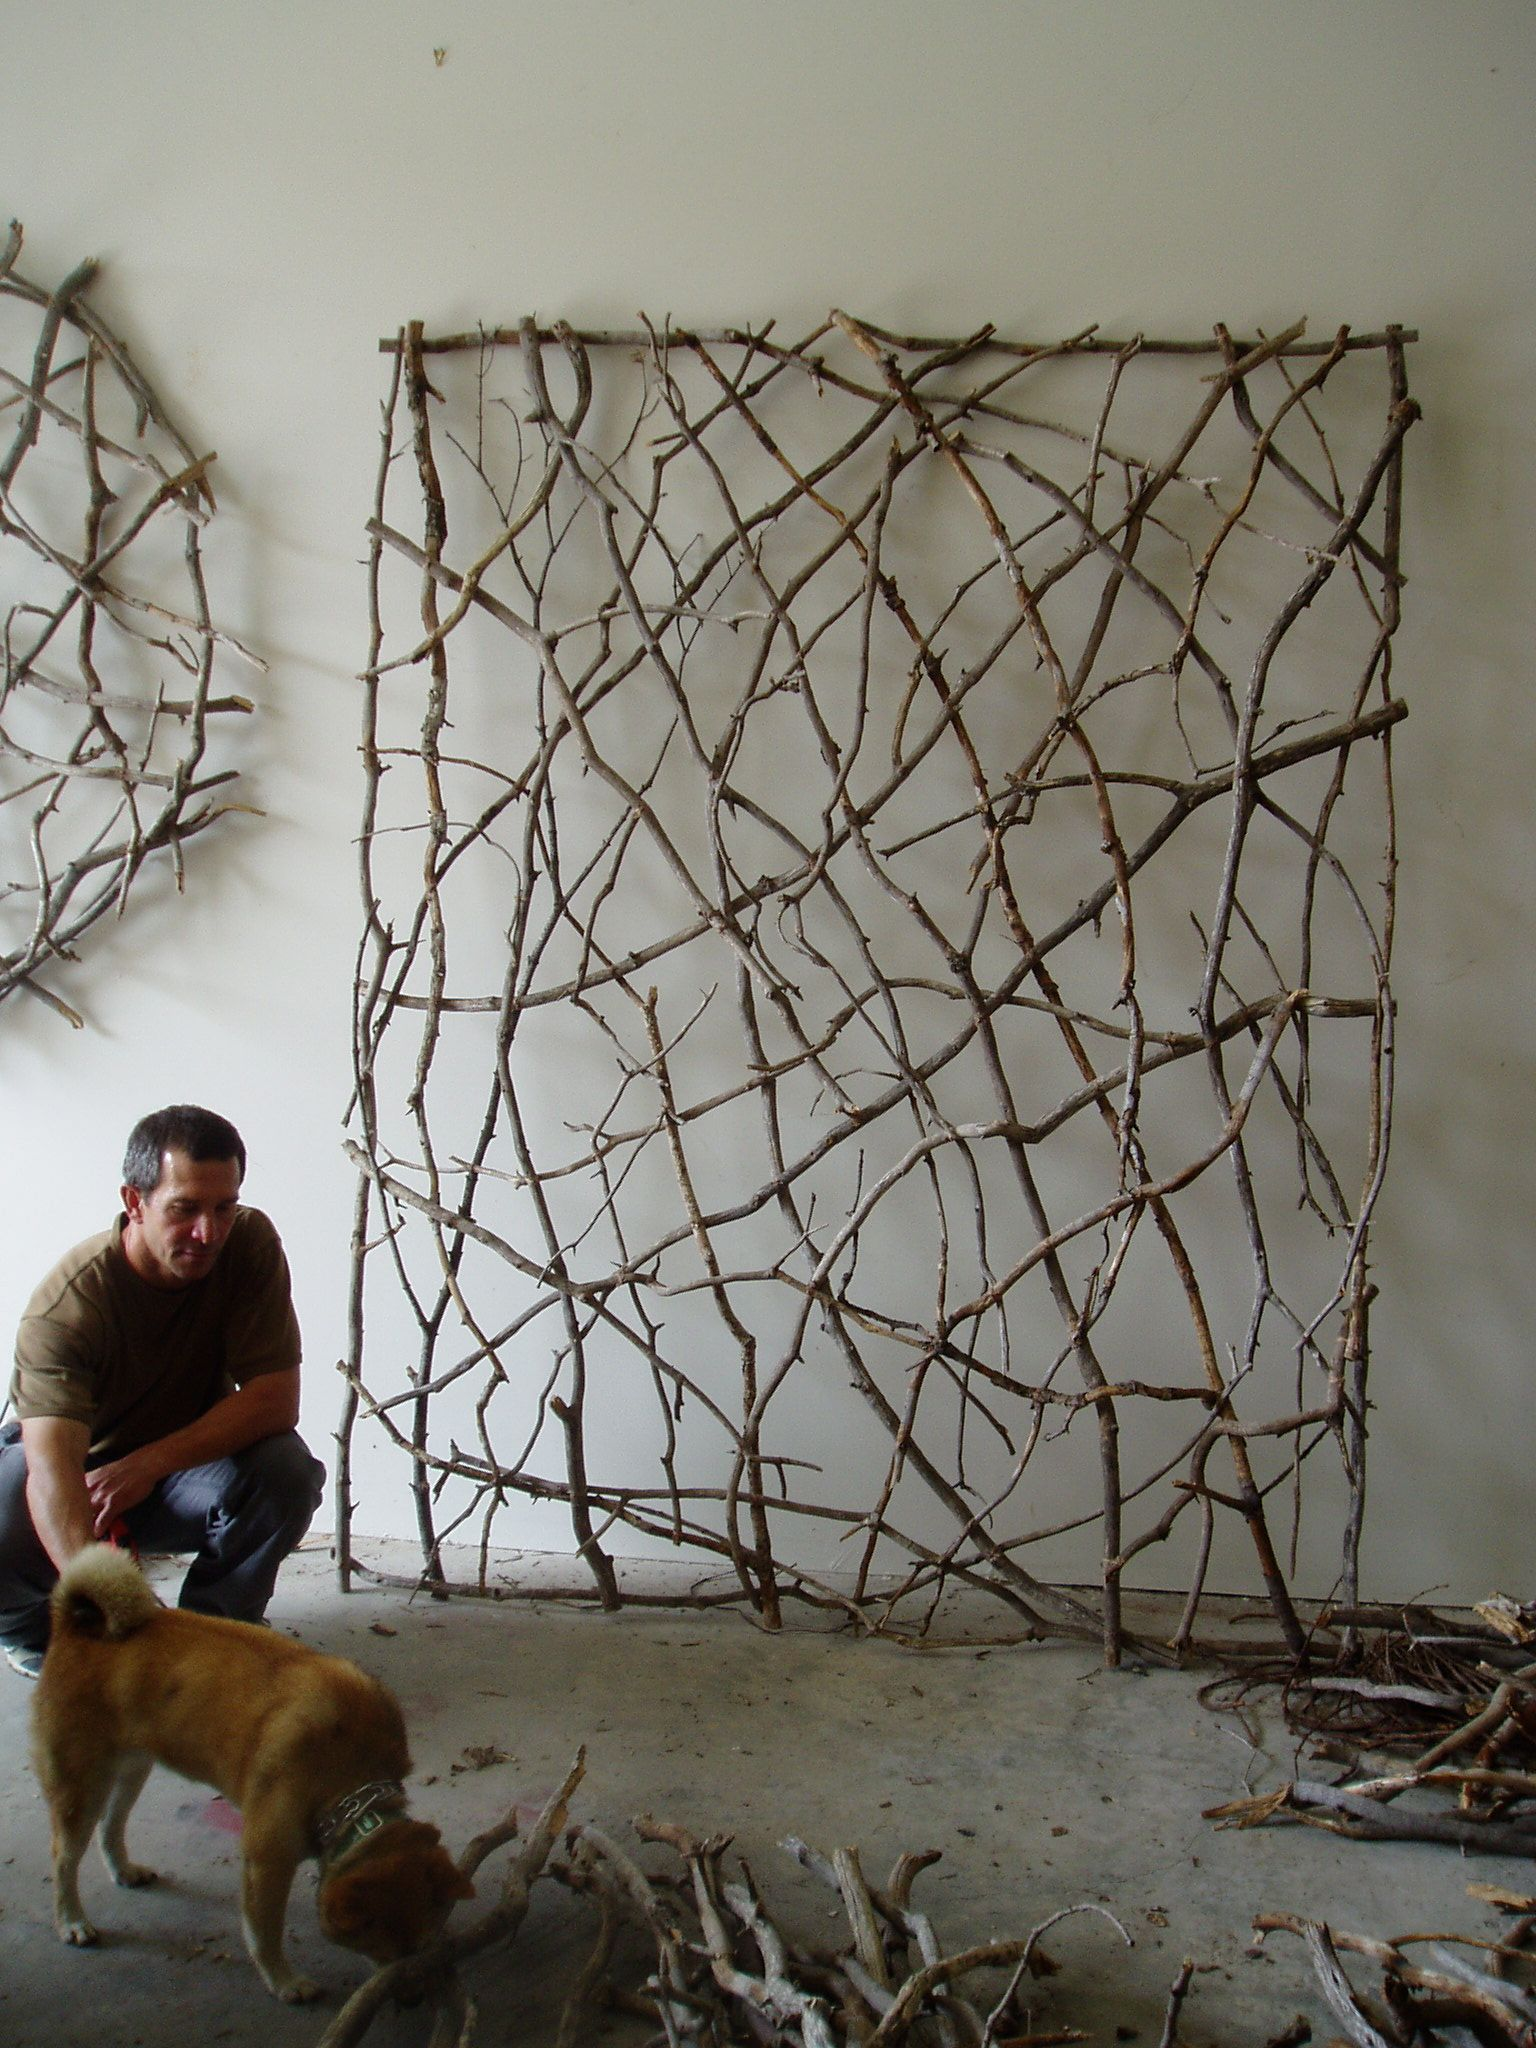 Diy garden wall art - Twig Woven Wall Sculpture By Paul Schick Diy Trellistrellis Ideasgarden